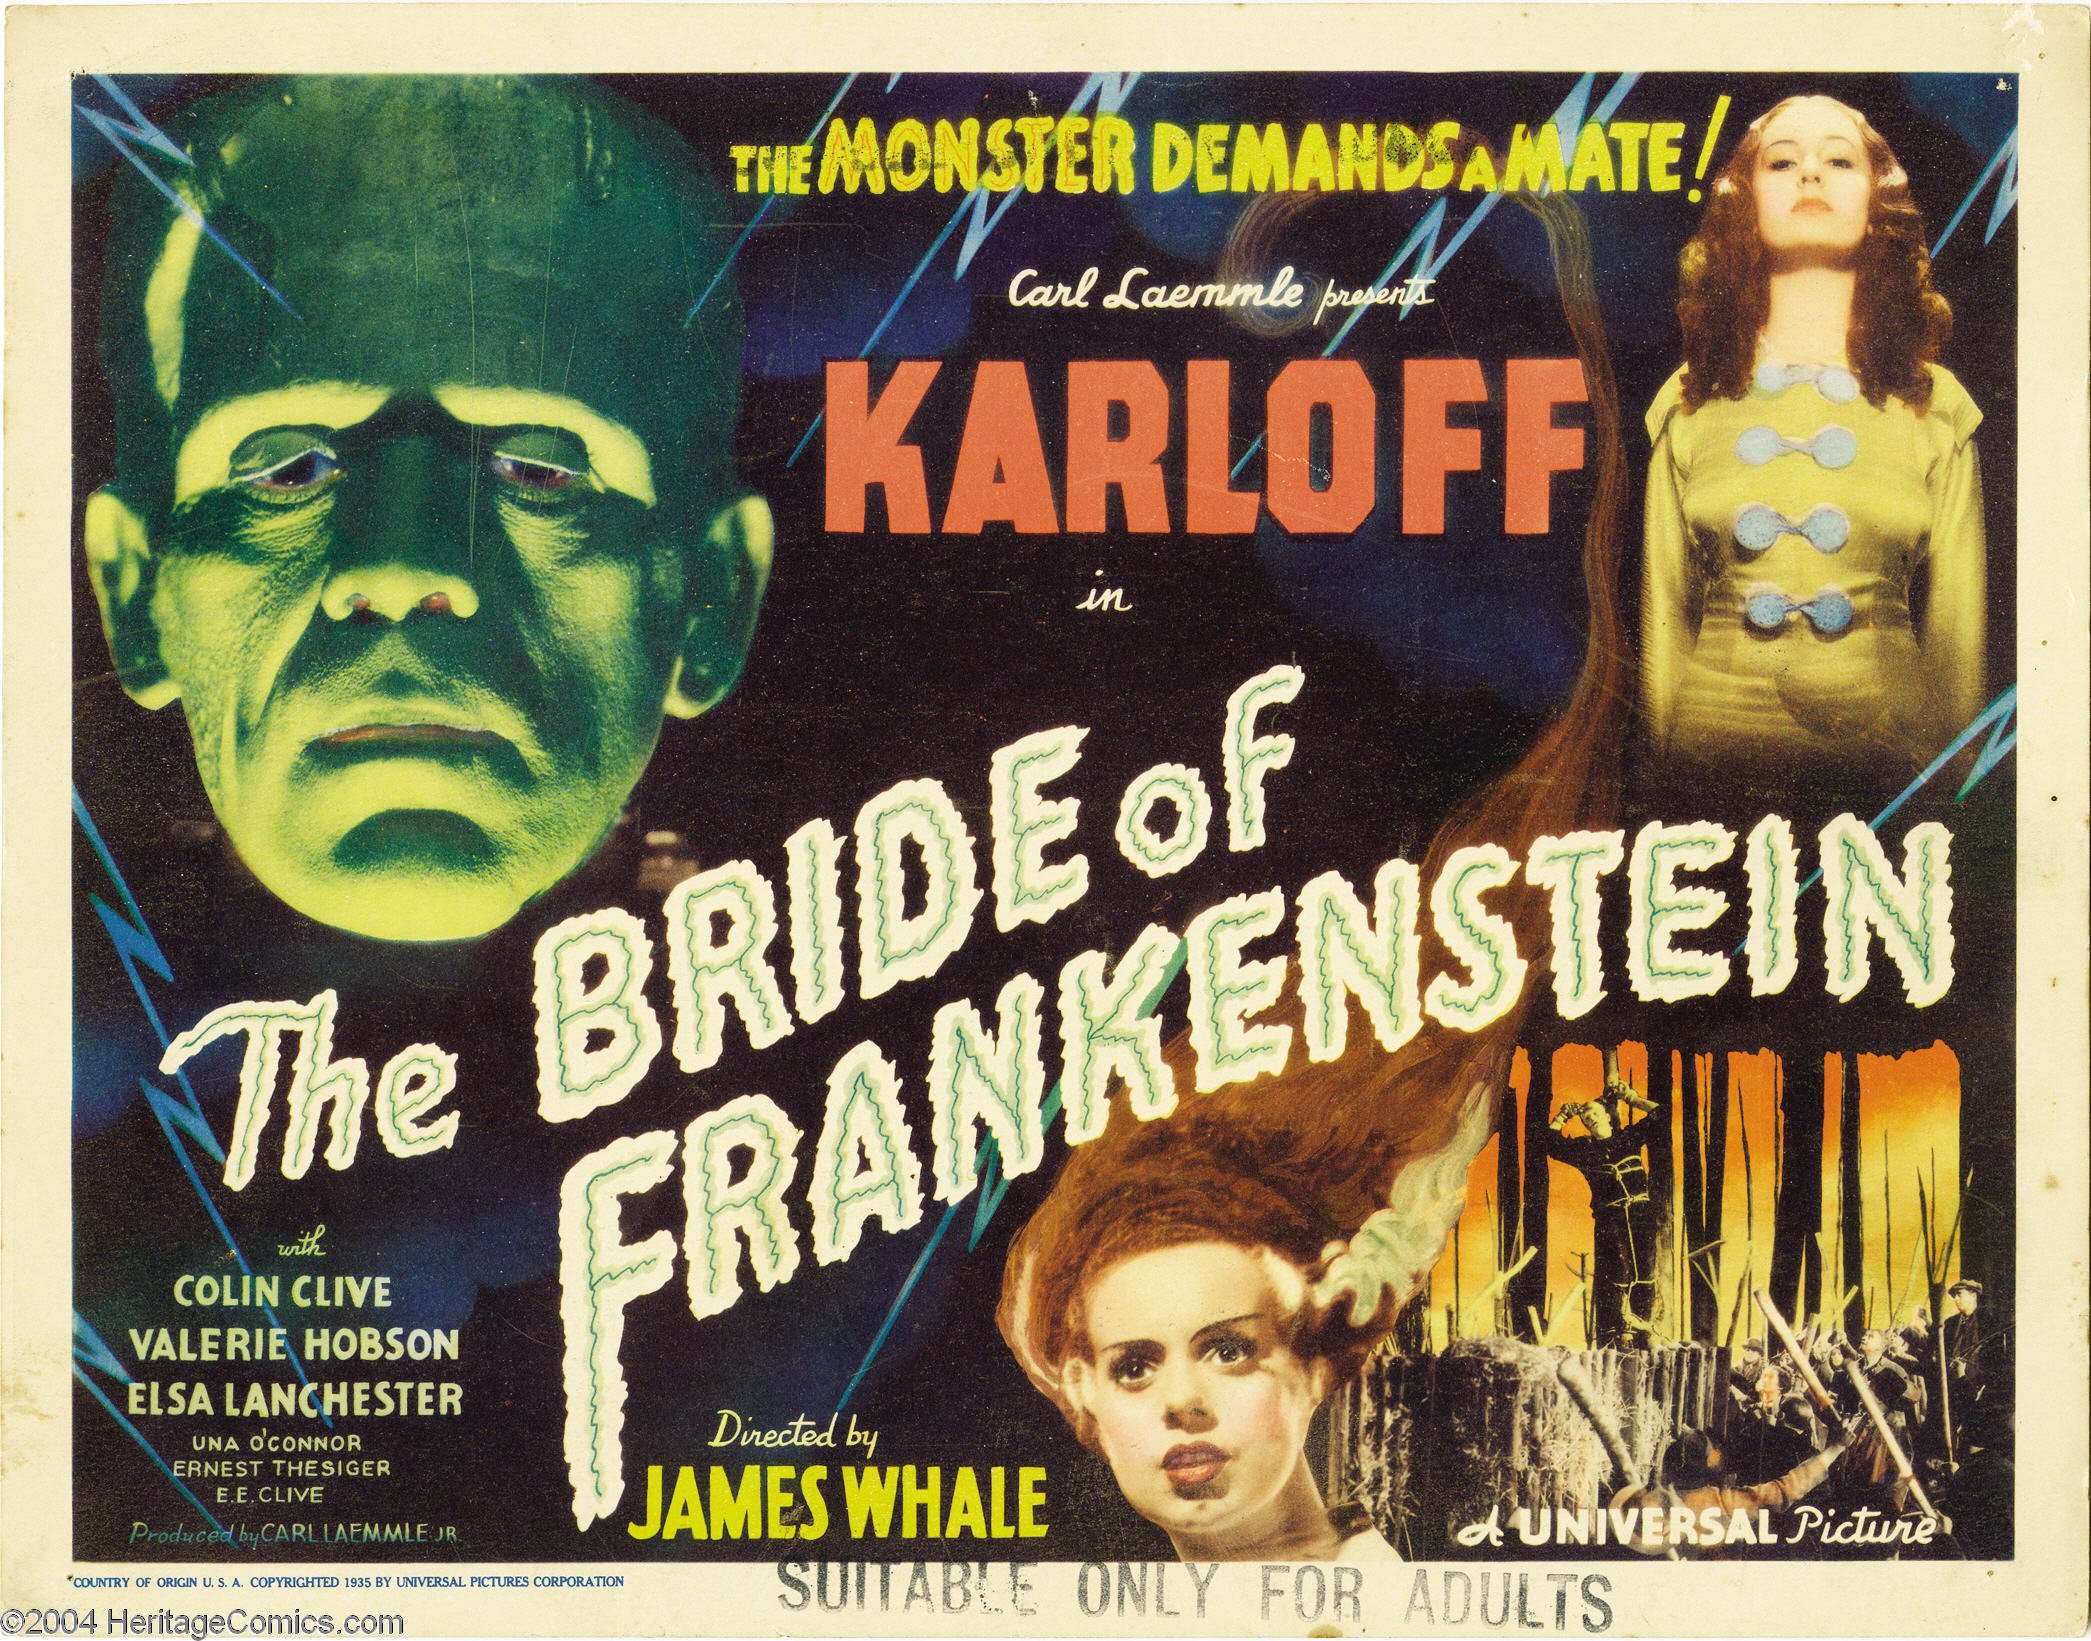 Boo! Here's some some of my favorite early horror films ...